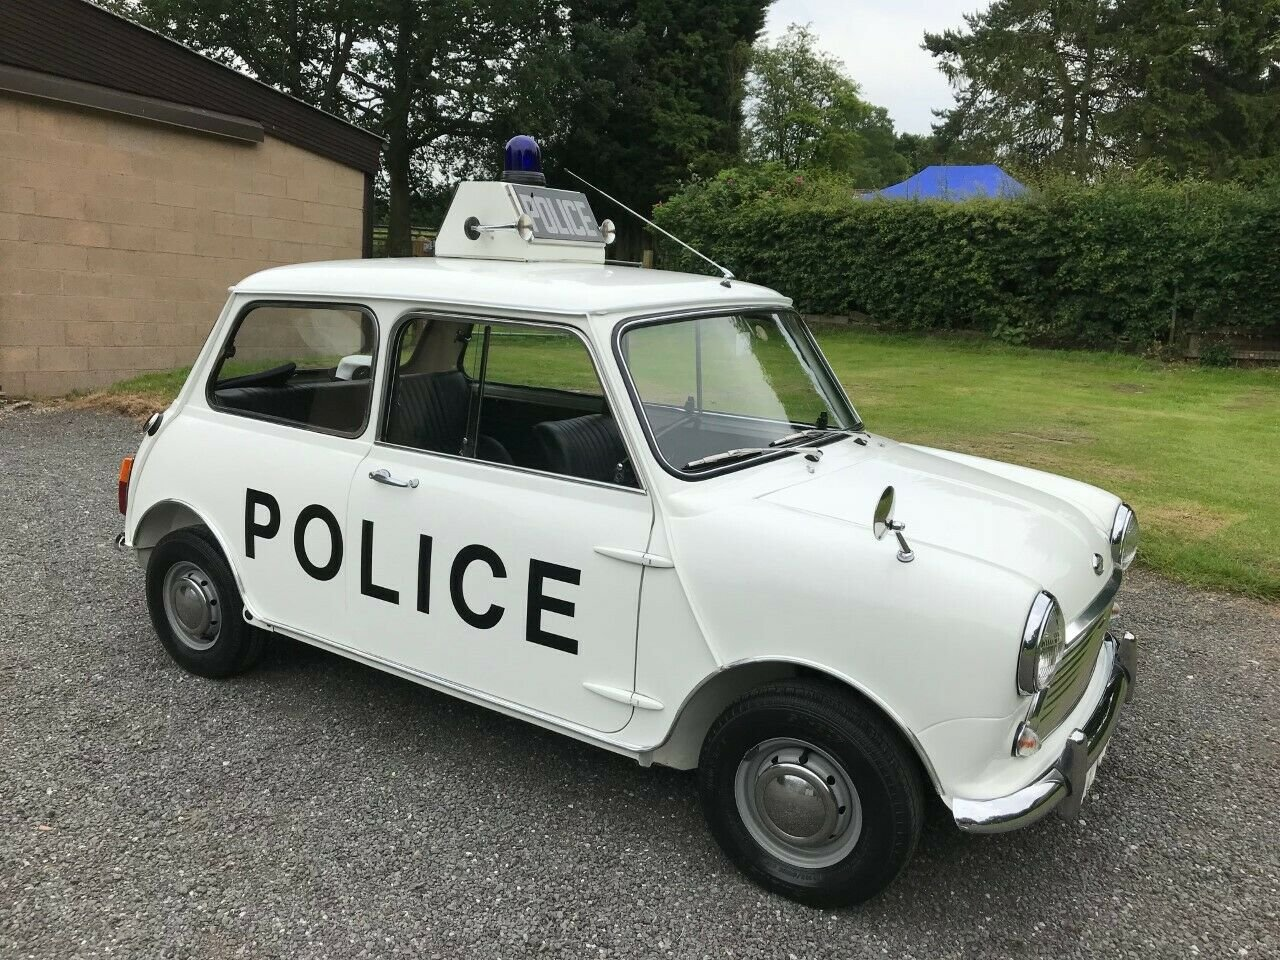 1968 MORRIS MINI COOPER S OKD 698F EX LIVERPOOL POLICE RARE! SOLD (picture 2 of 6)